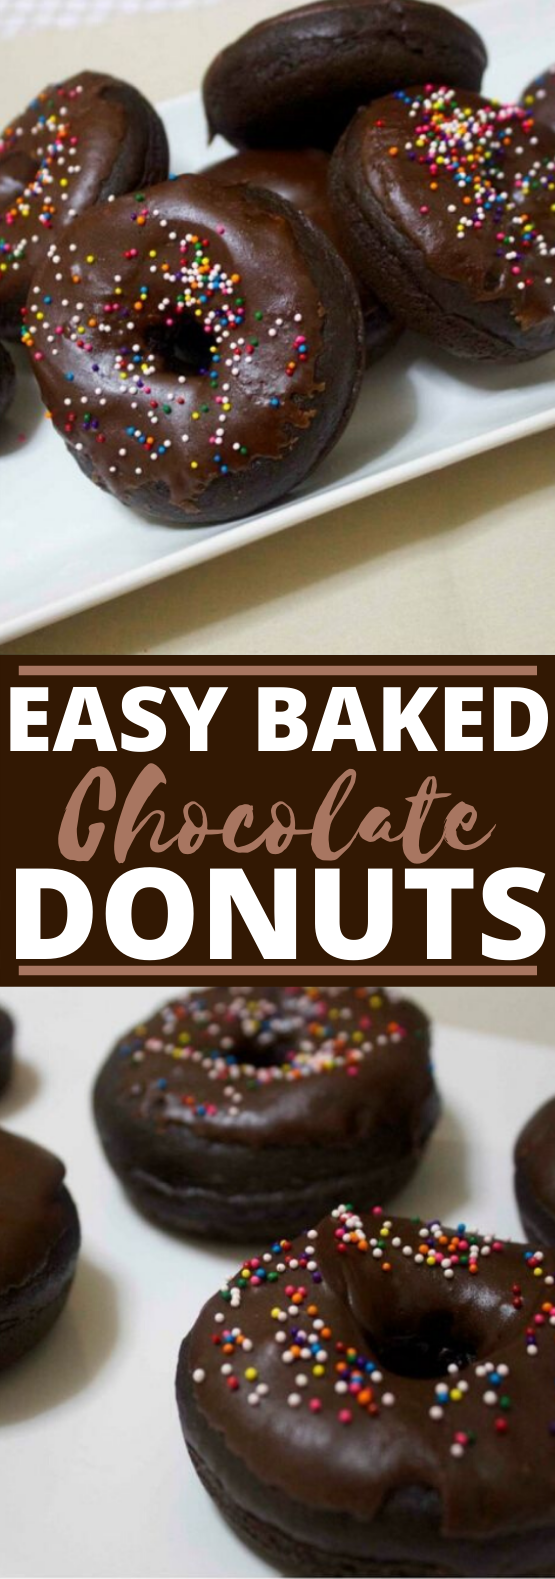 Baked Chocolate Donuts #chocolate #baking #desserts #breakfast #donut